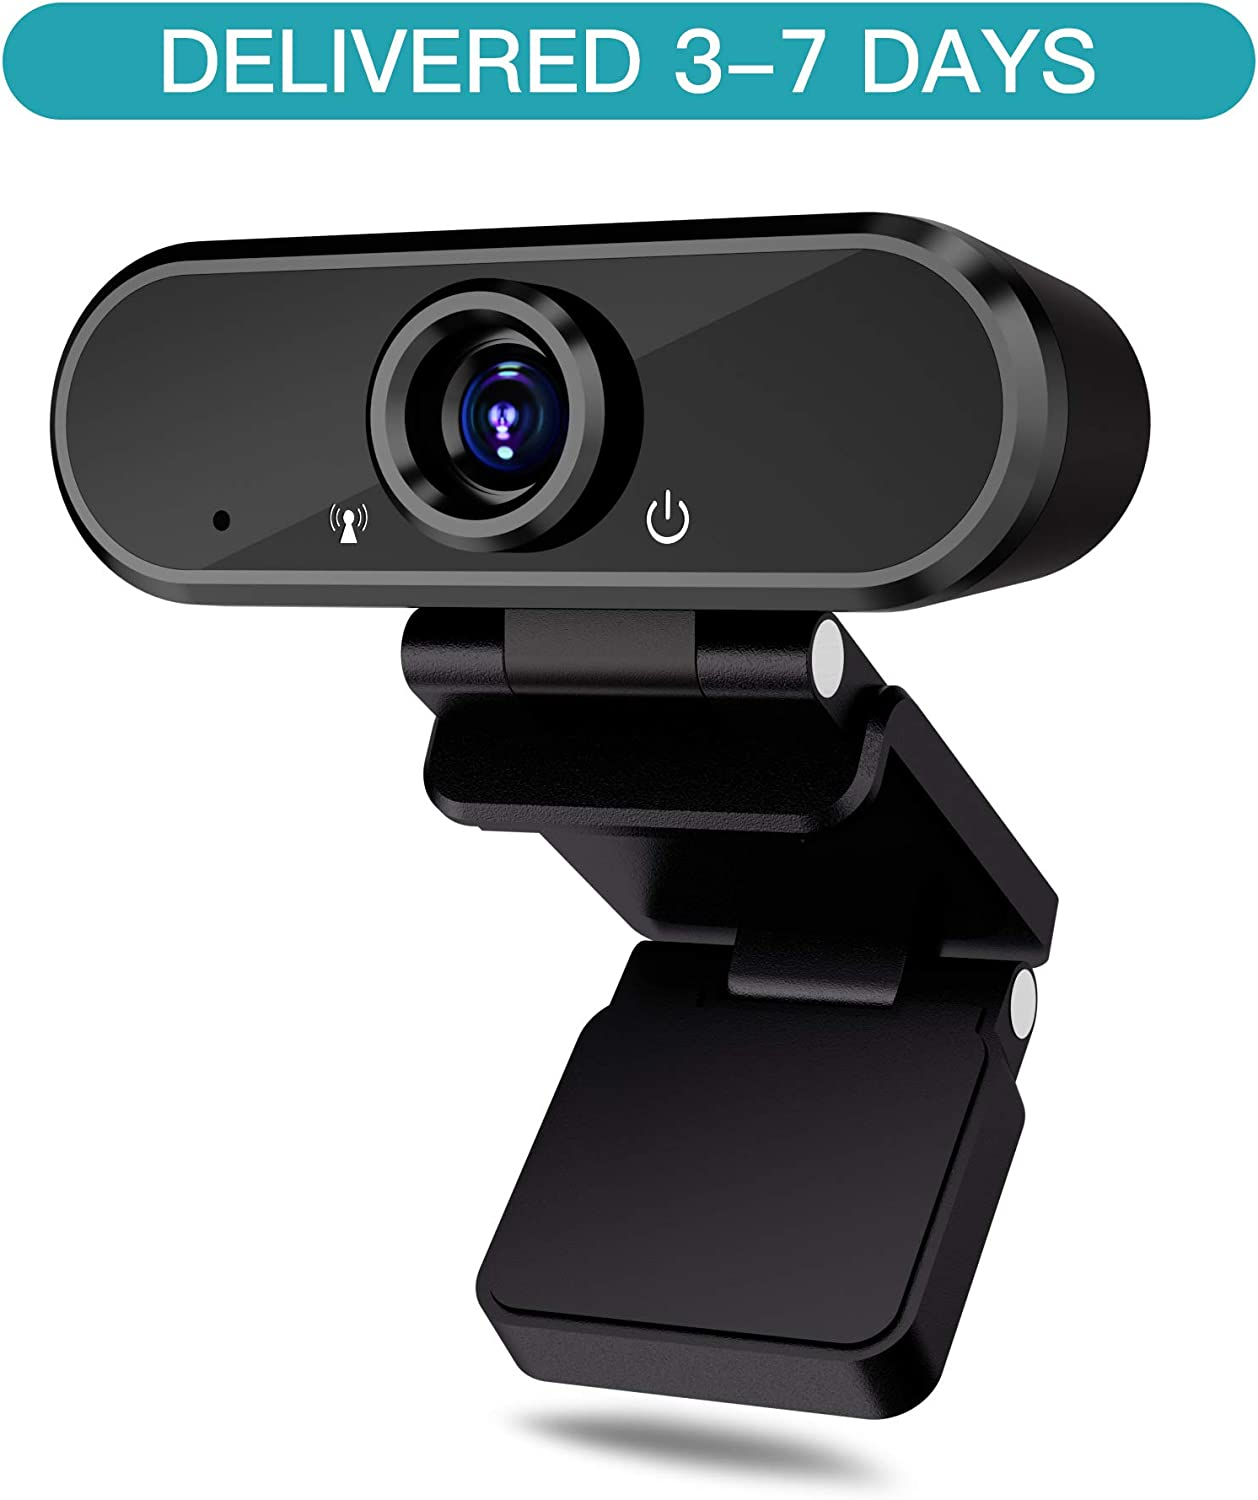 HD Webcam with Microphone, Auto Focus 1080p Web Camera for Video Calling Conferencing Recording, PC Laptop Desktop USB Webcams